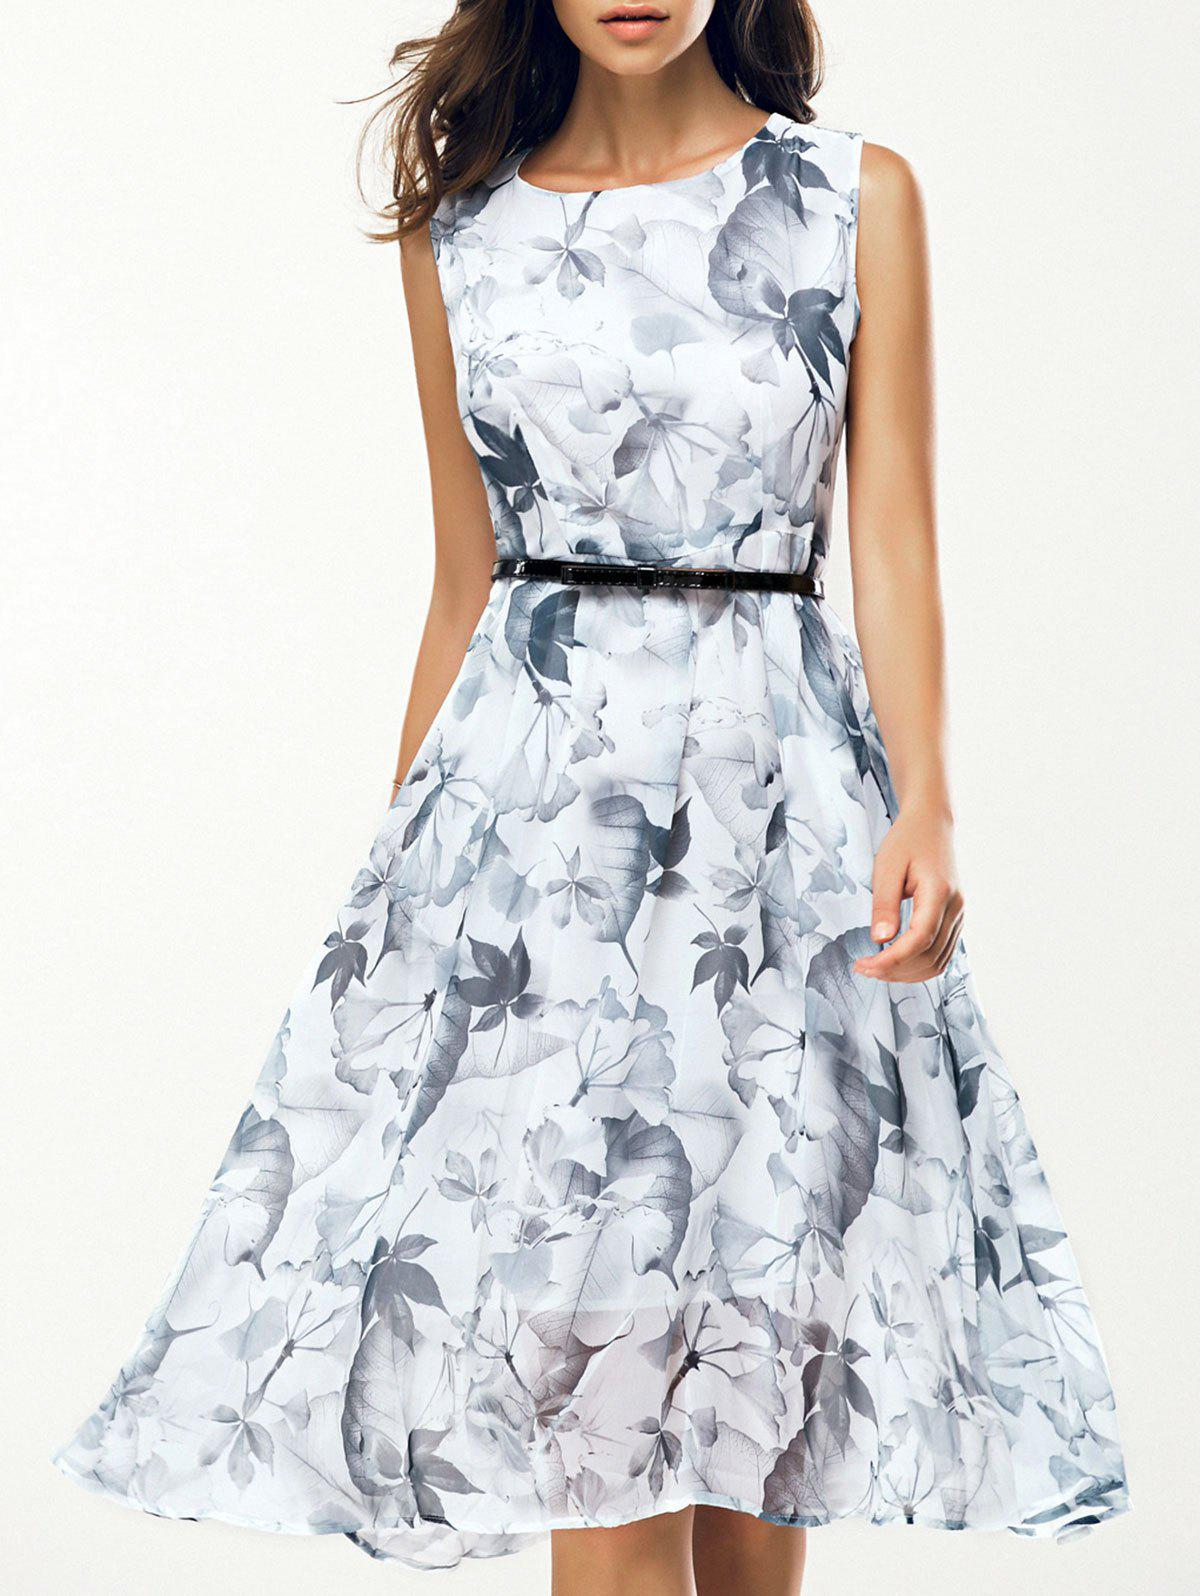 Jewel Neck Sleeveless Floral Print A Line Belted Dress - WHITE 2XL